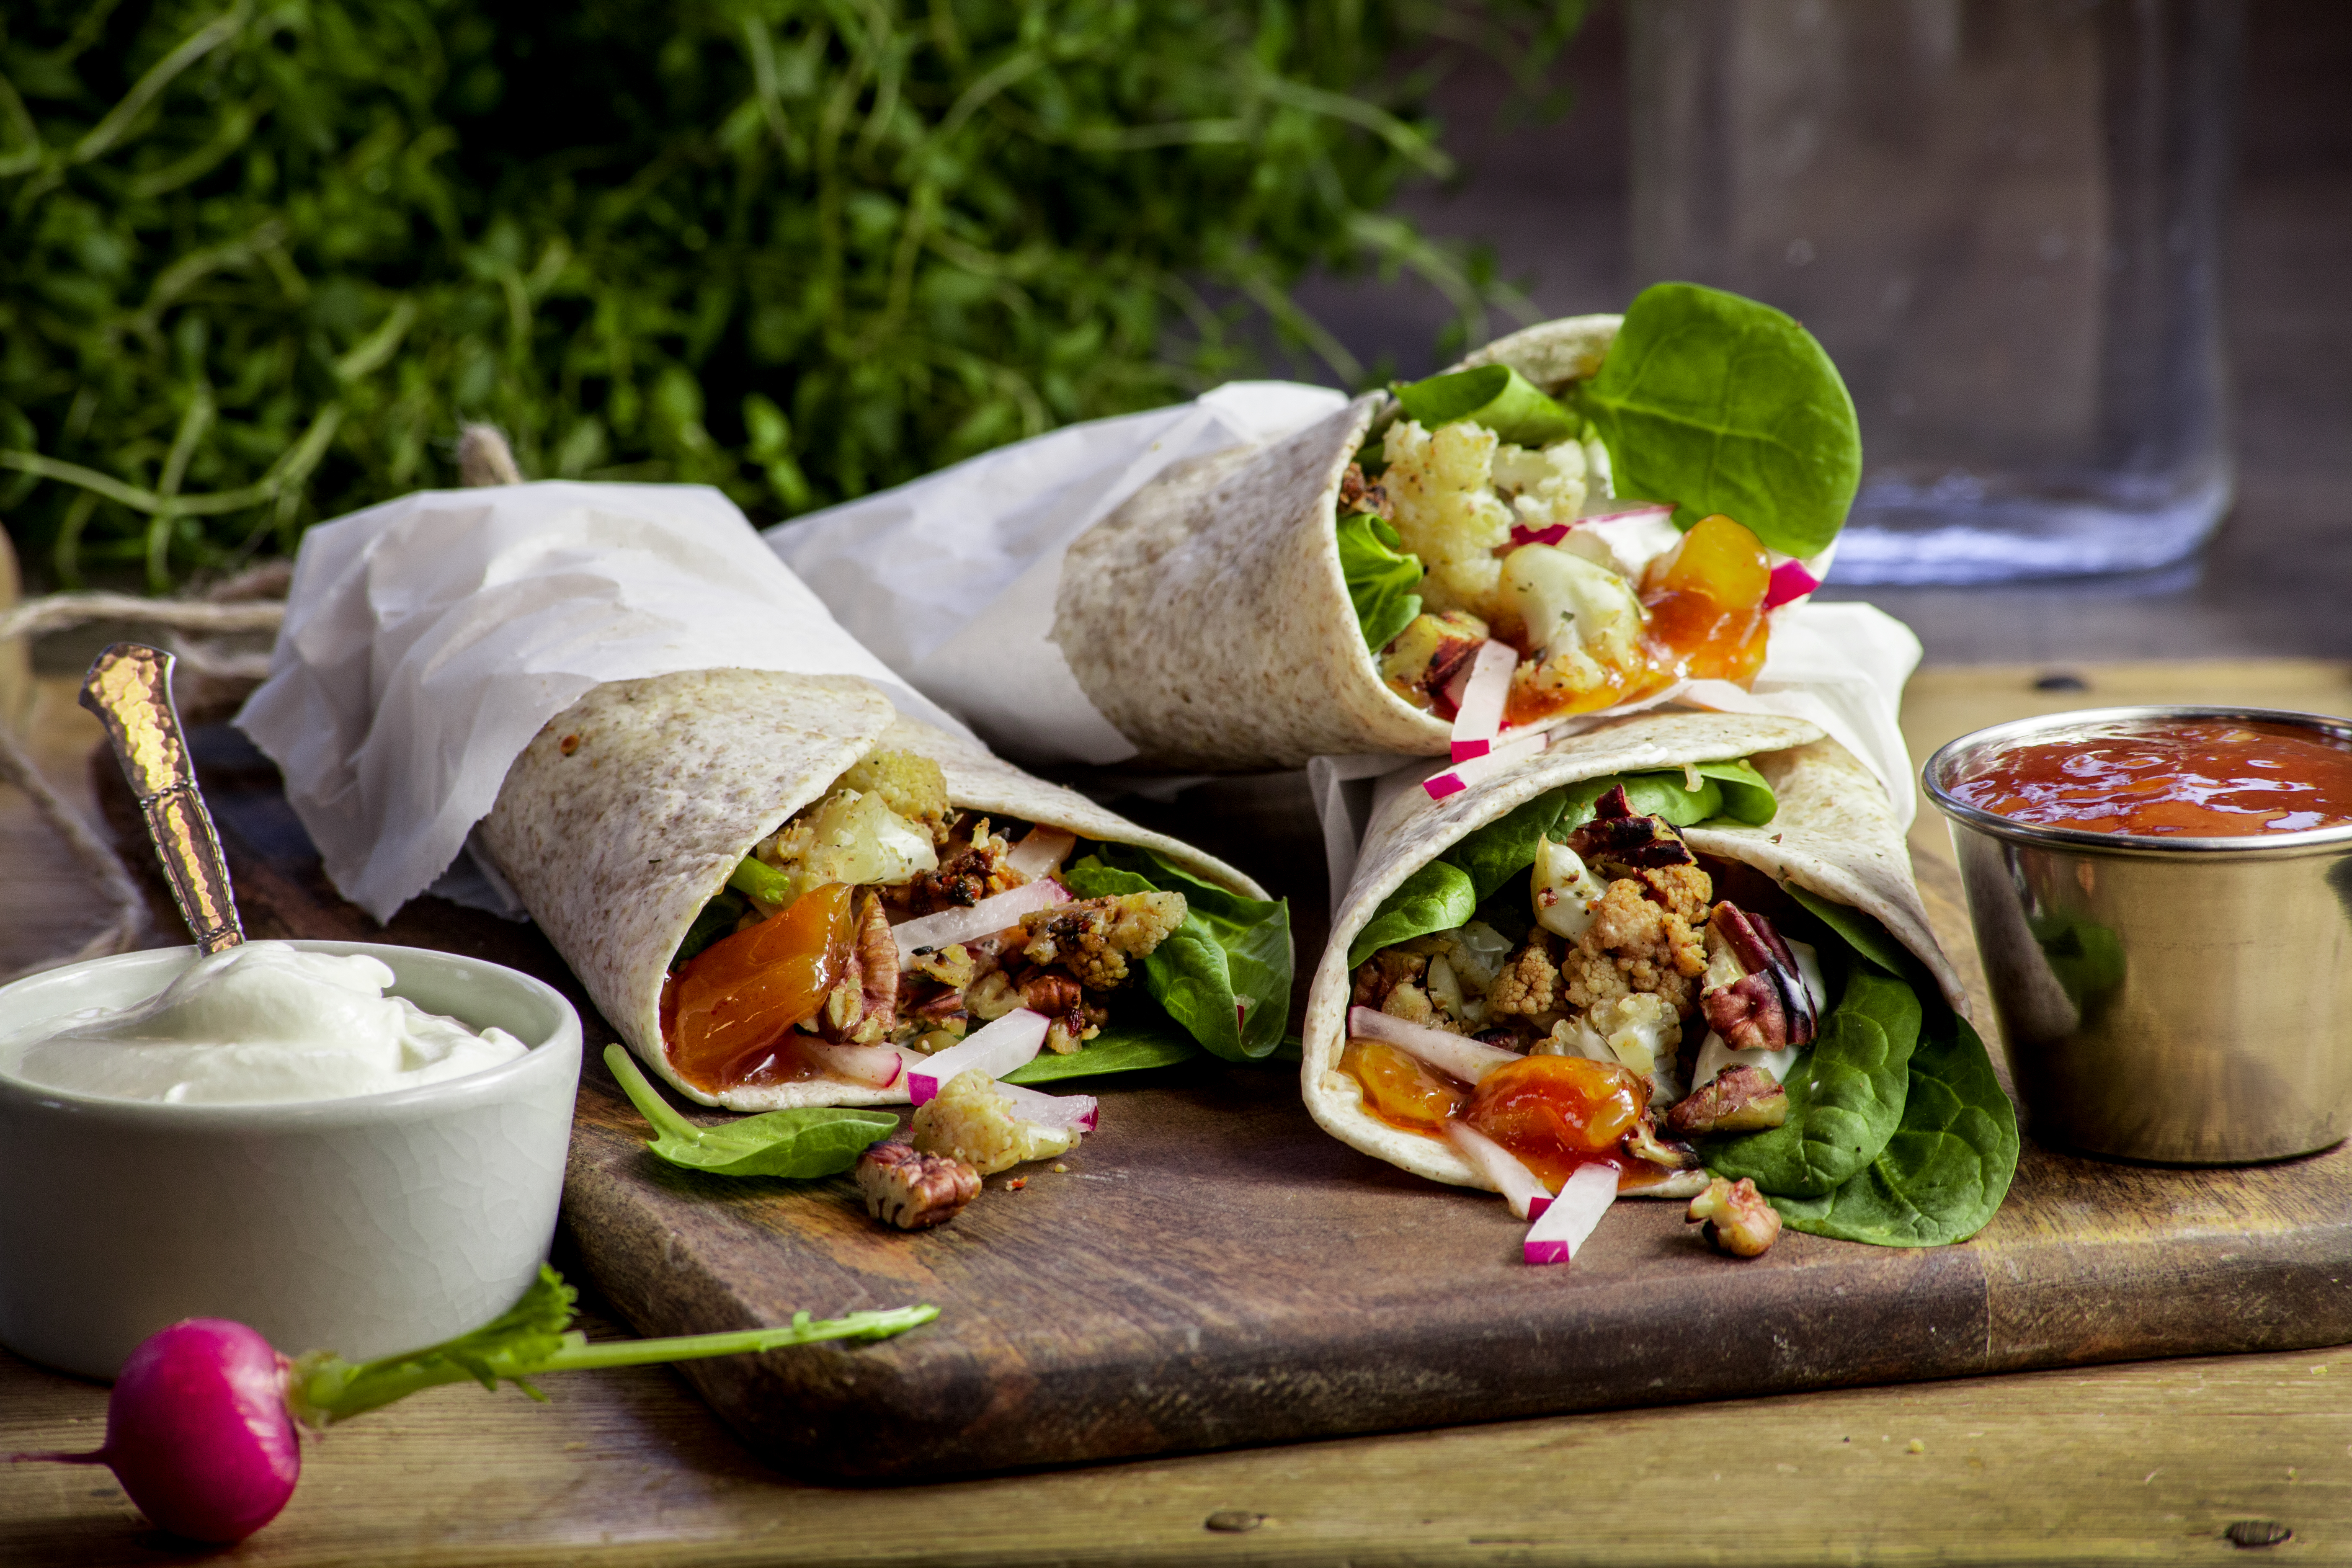 Pulled calloflower wrap with pecan nuts and lemon chutney